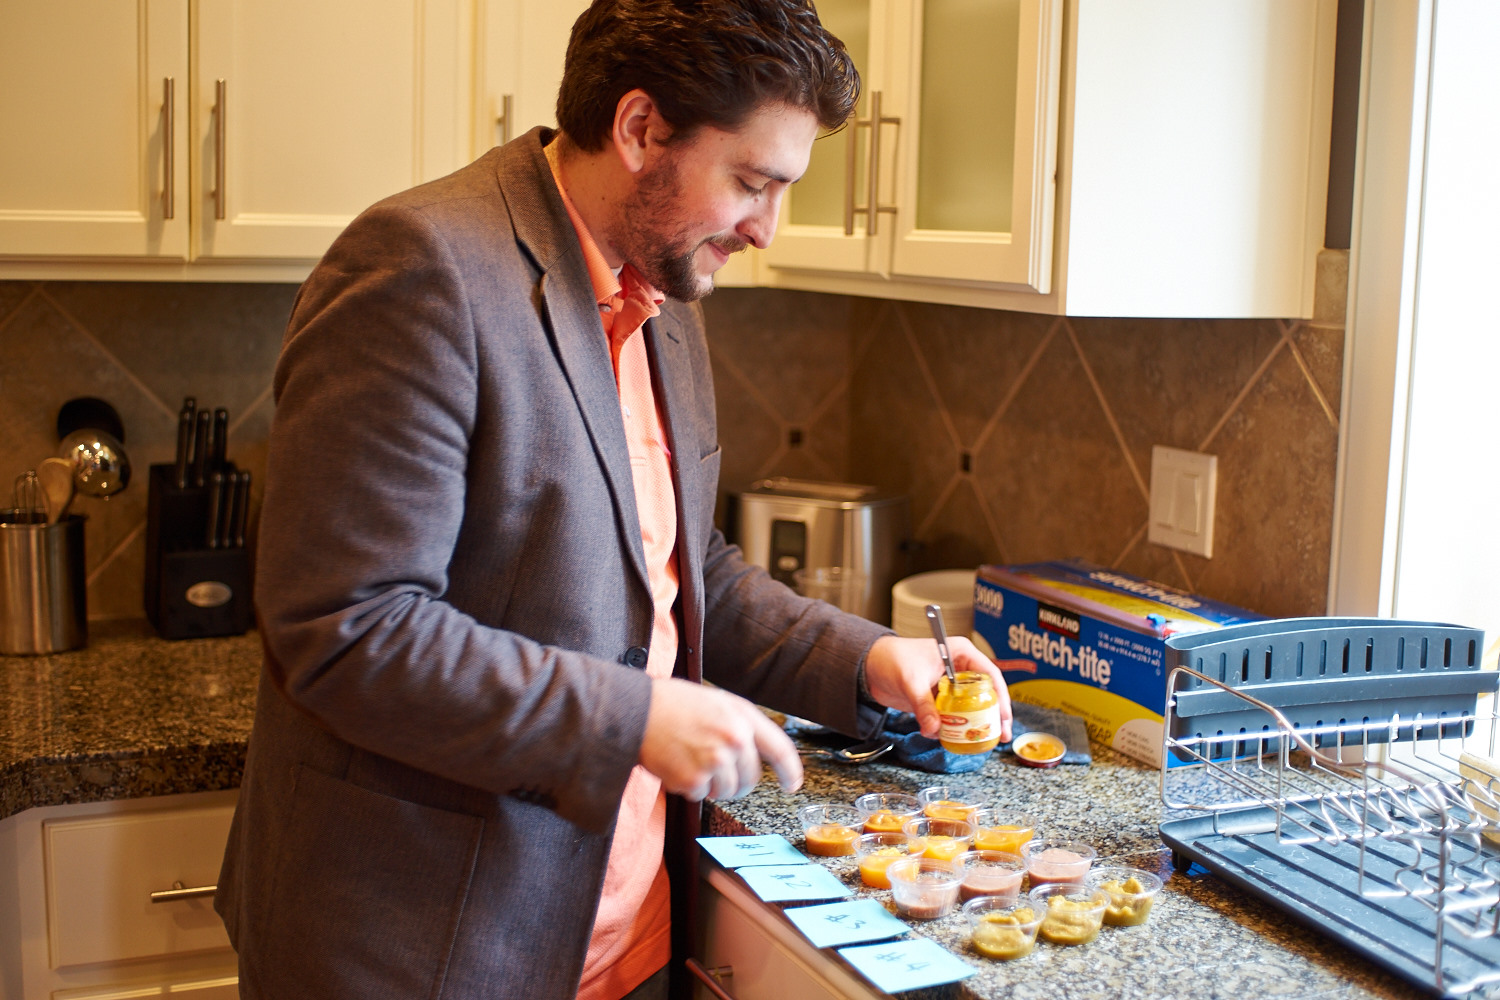 As the event progressed, the father to be is preparing the baby food taste contest.. I was joking that he would have a lot of experiences later since he is going to feeding baby while feeding himself at same time.